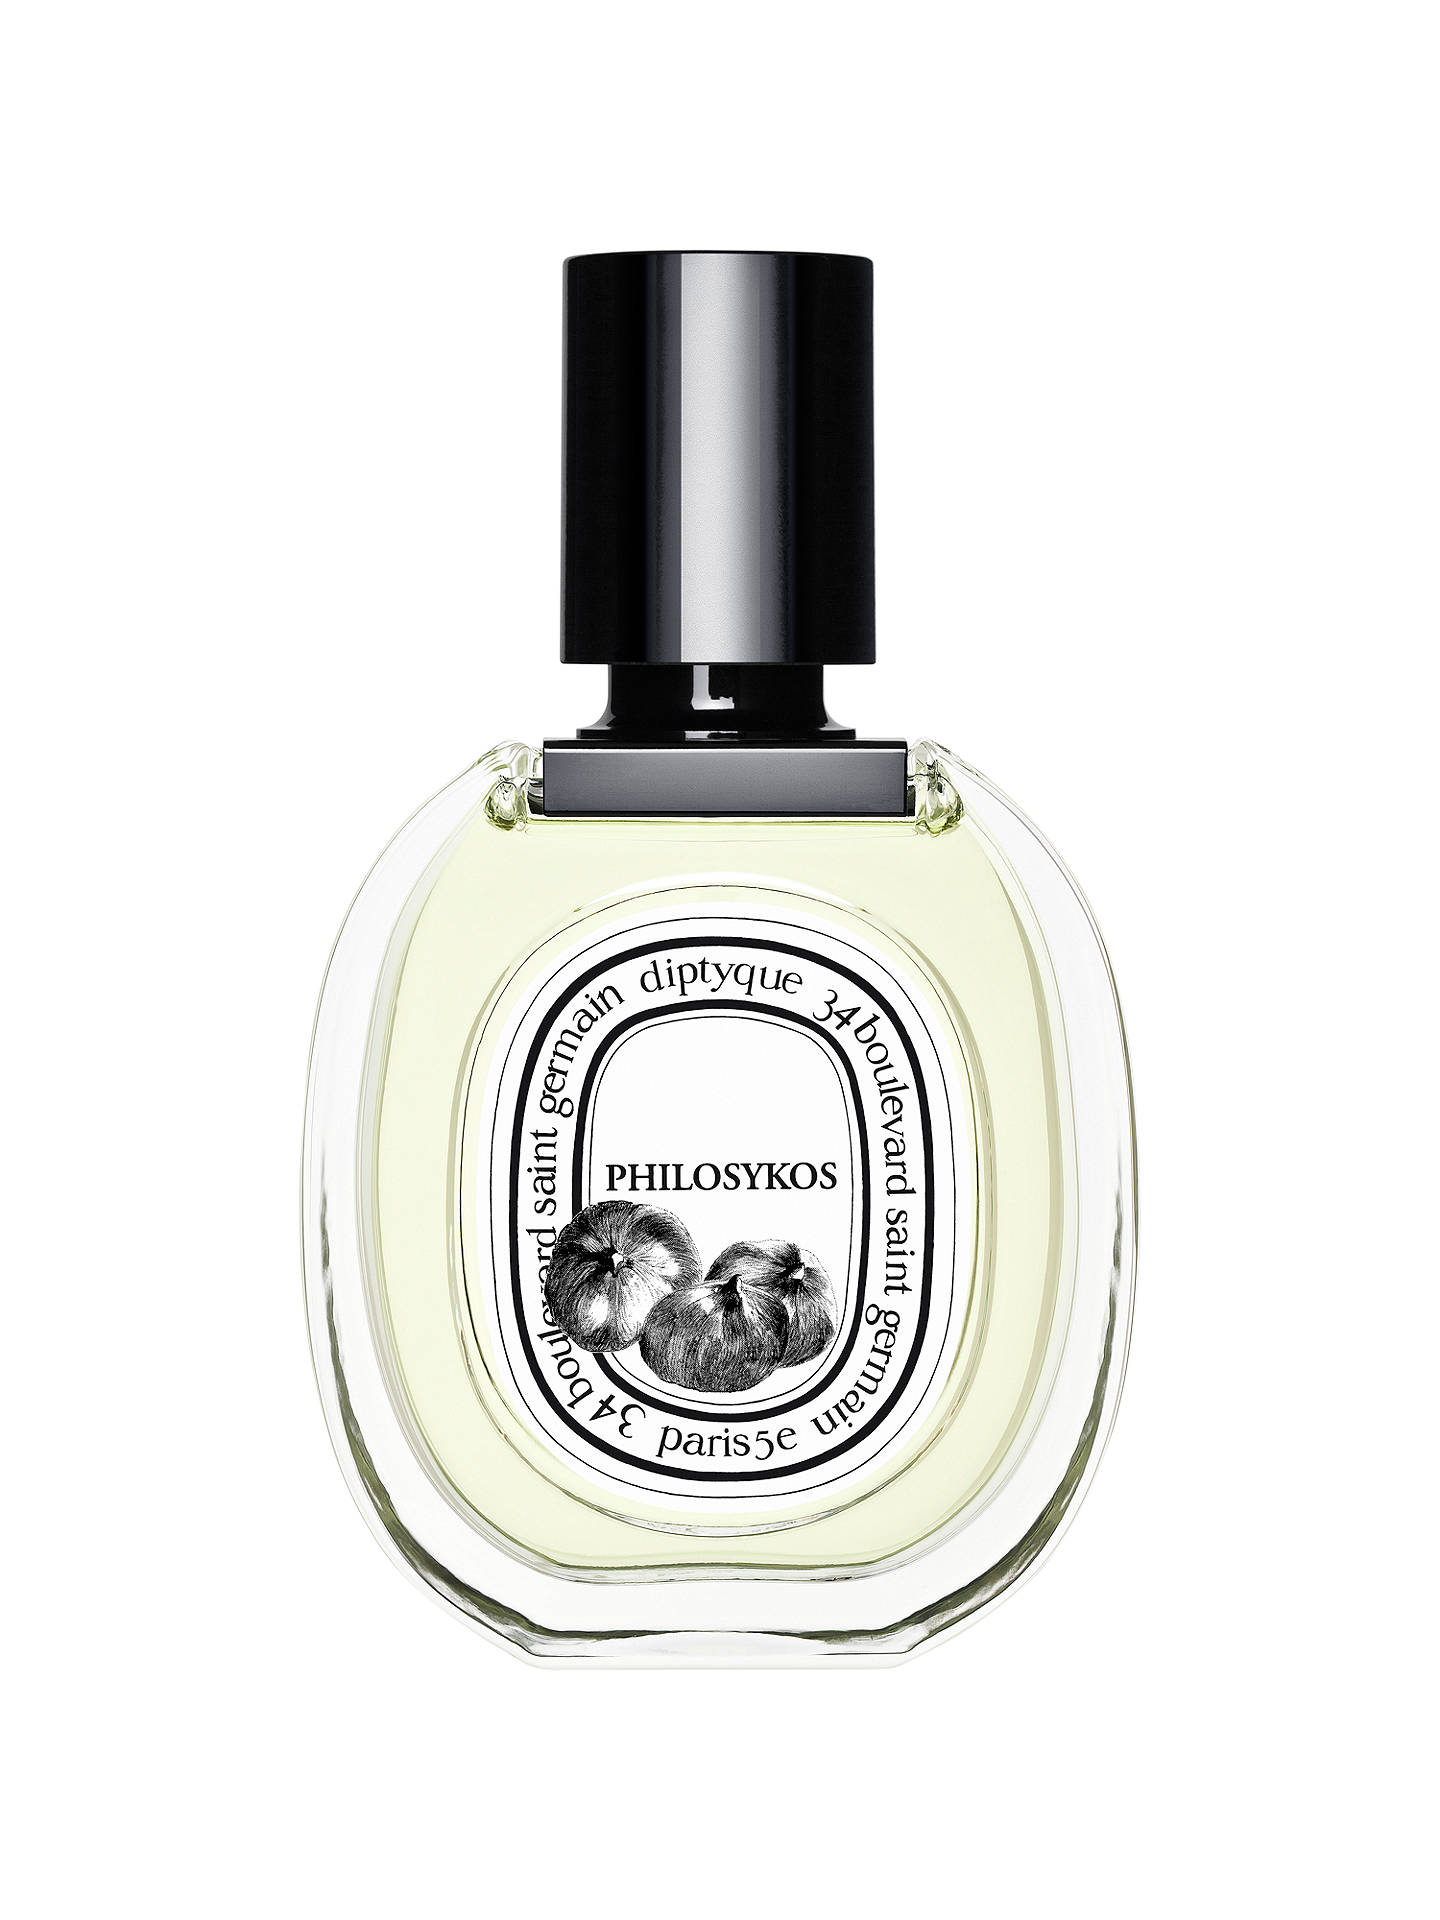 Buy Diptyque Philosykos Eau de Toilette, 50ml Online at johnlewis.com